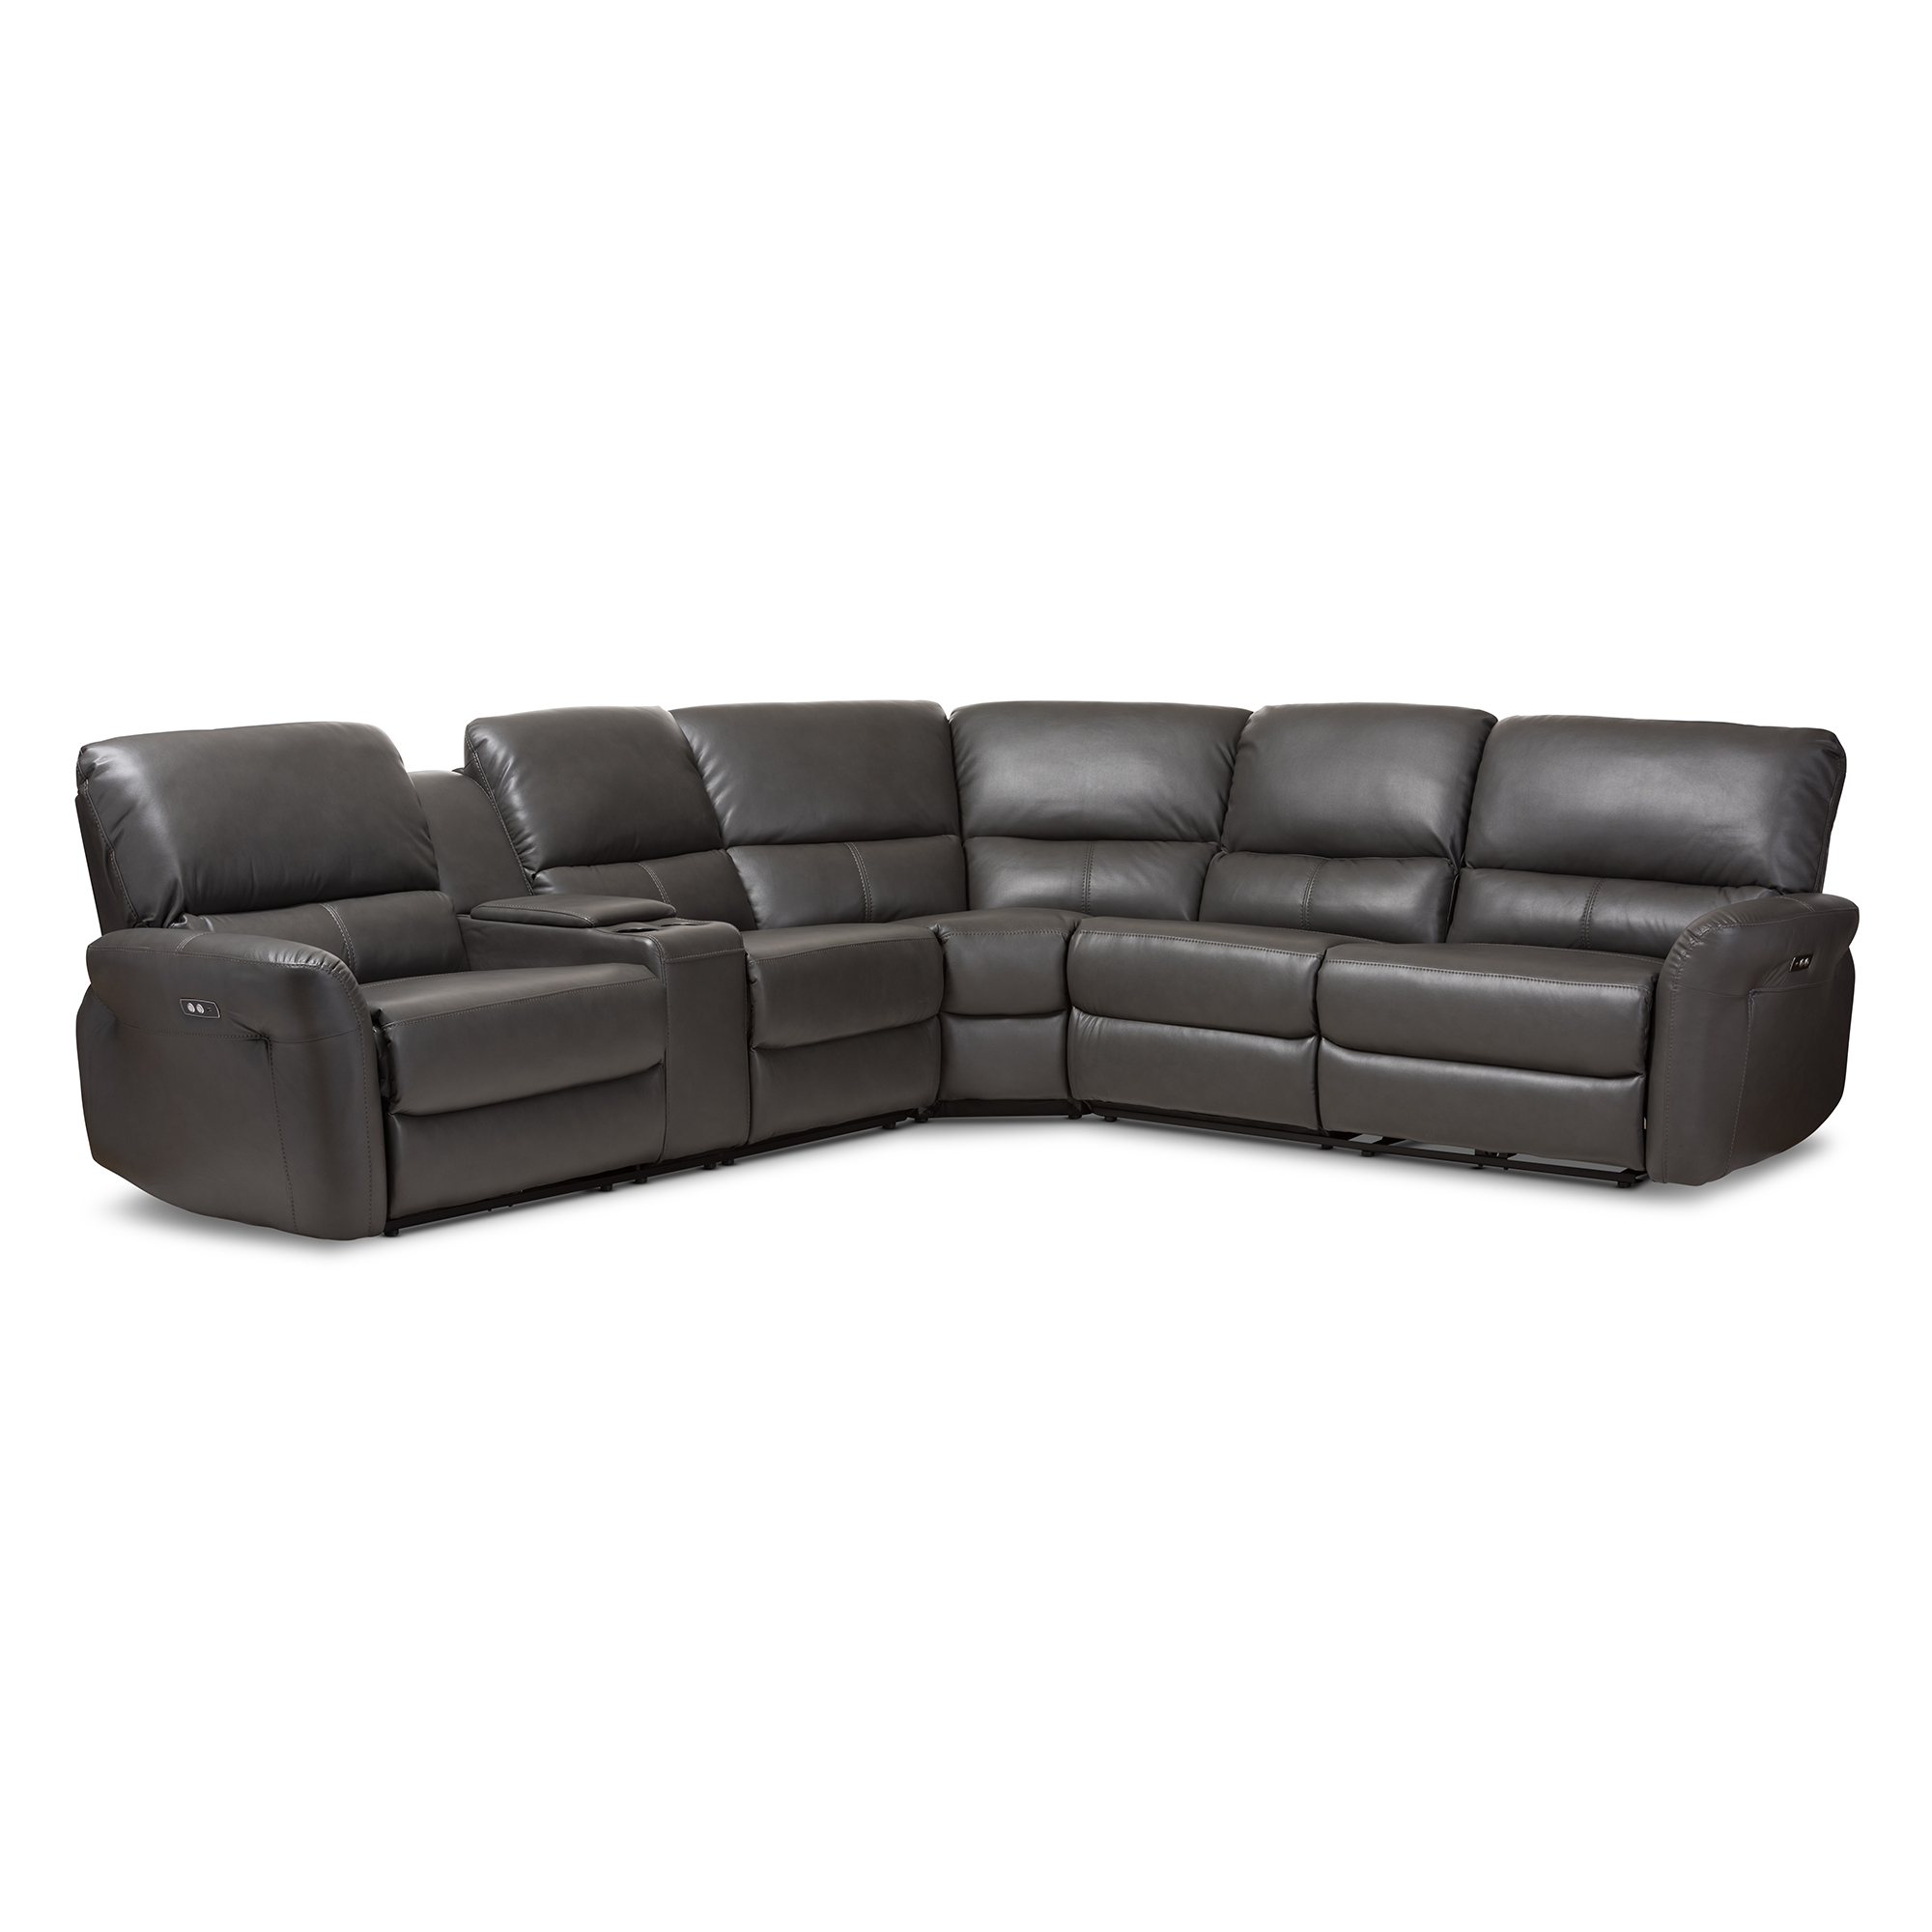 Baxton Studio Amaris Modern and Contemporary Grey Bonded Leather 5-Piece Power Reclining Sectional Sofa  sc 1 st  Baxton Studio Outlet : grey reclining sectional sofa - Sectionals, Sofas & Couches